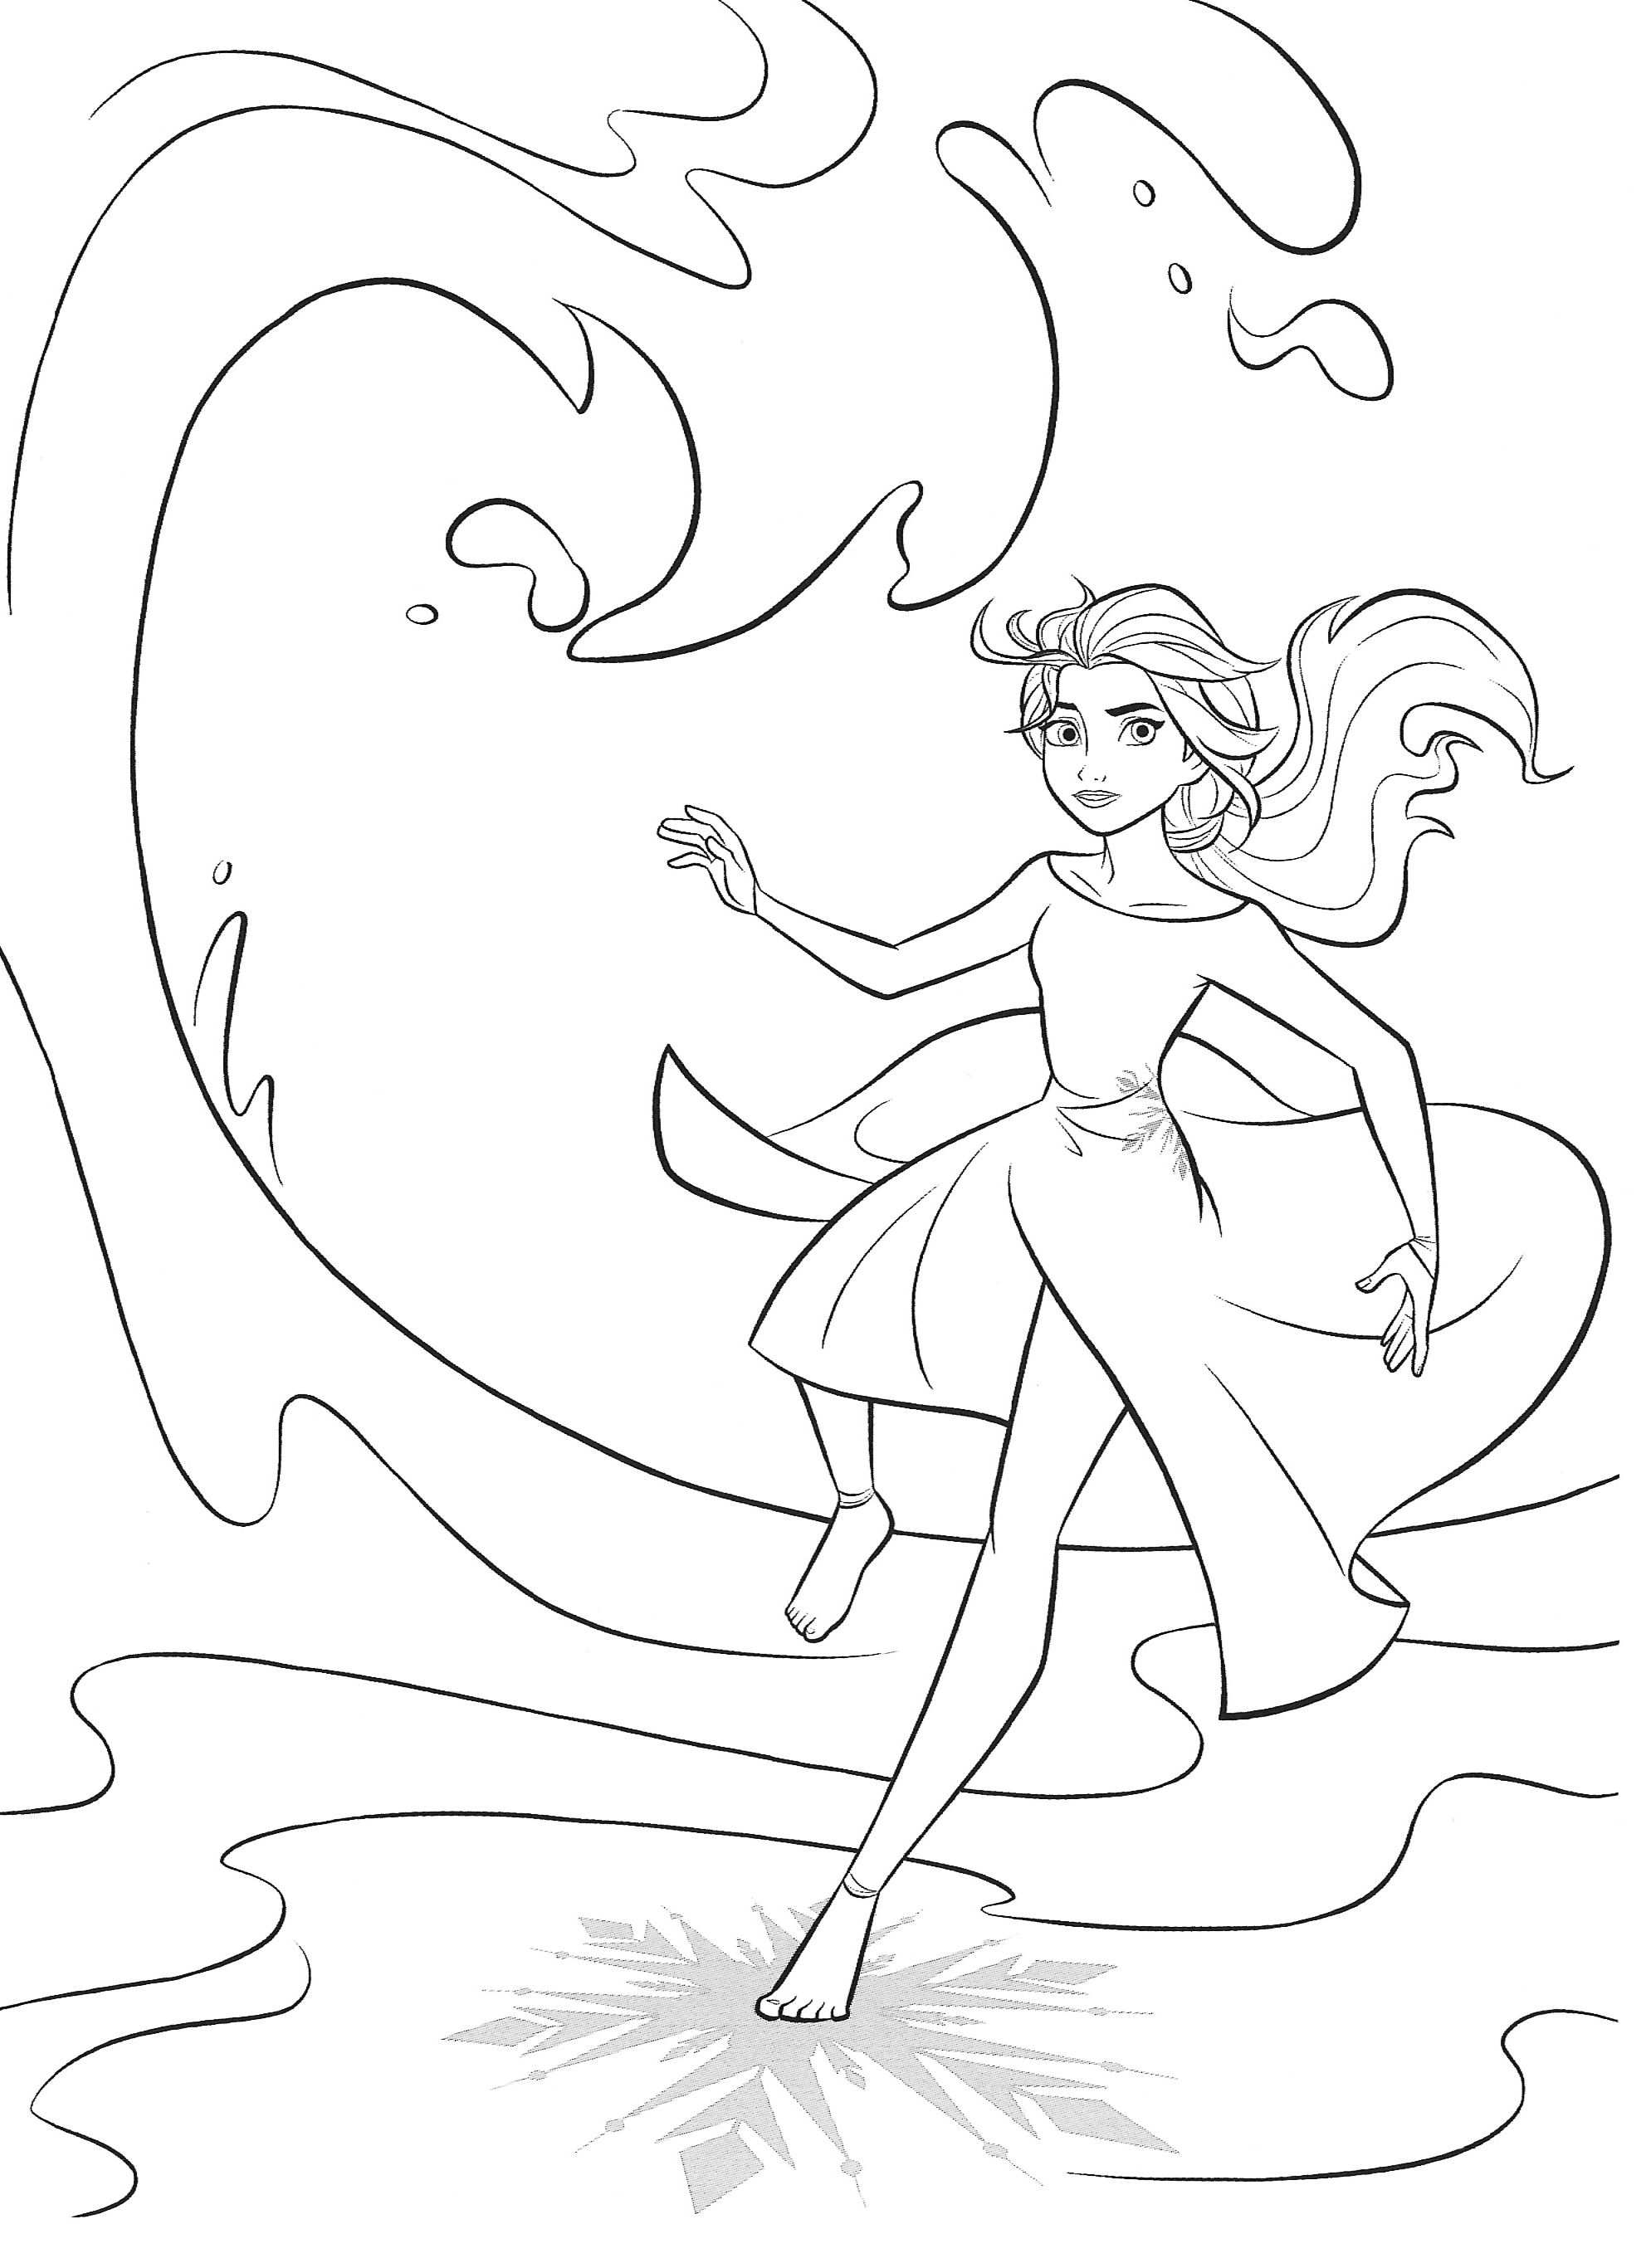 New Frozen 2 Coloring Pages With Elsa In 2020 Kleurplaten